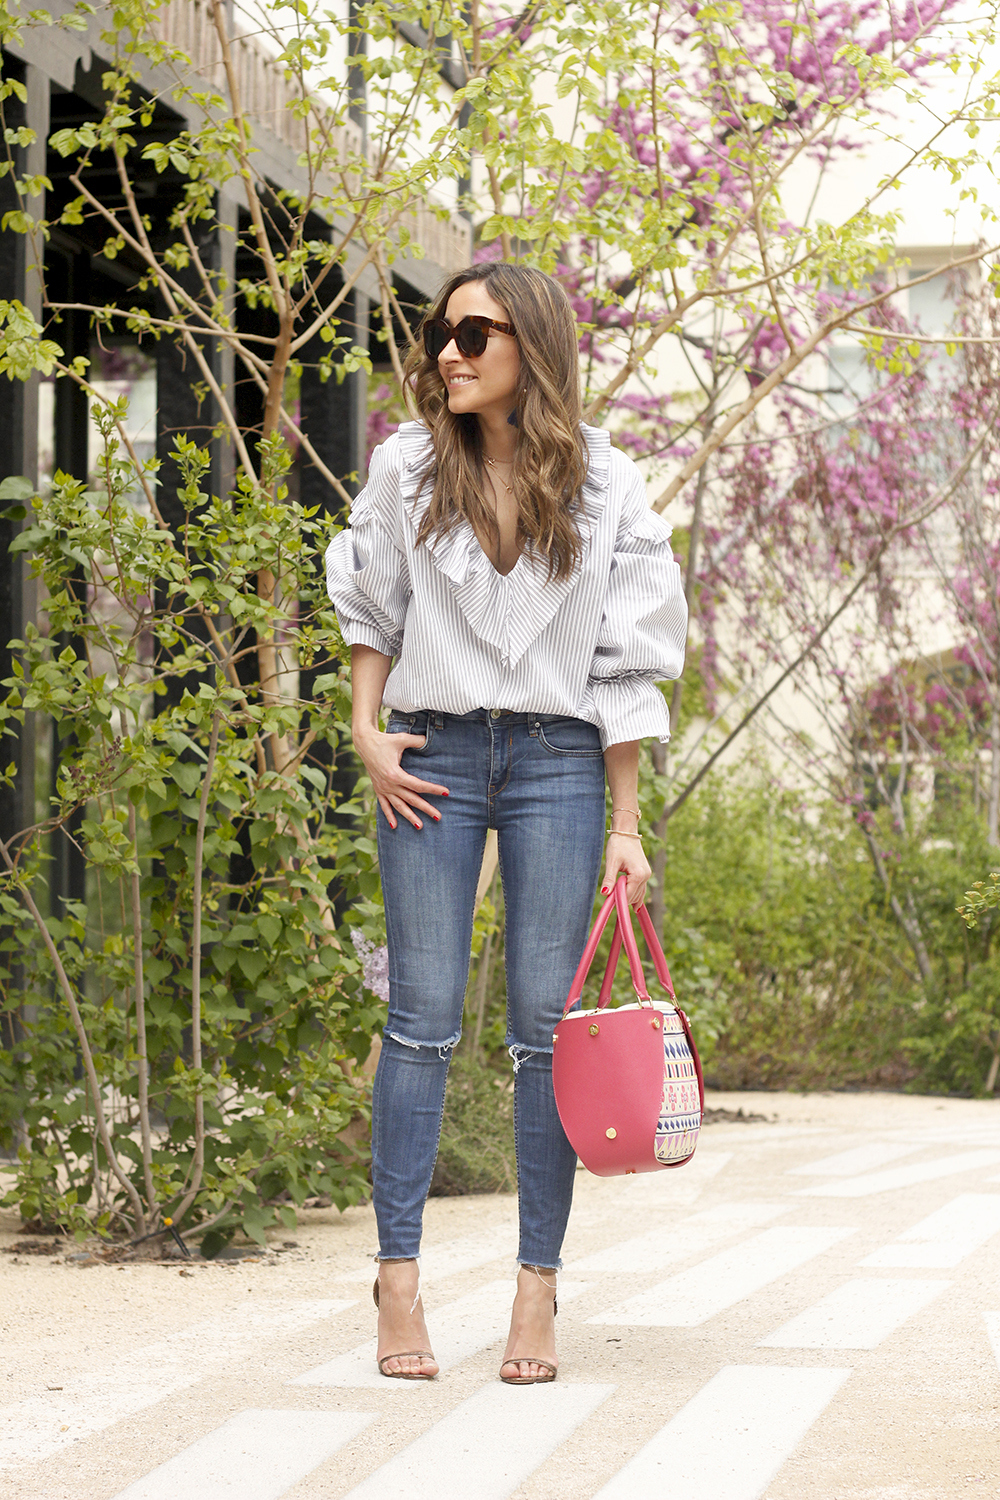 Ruffled striped shirt jeans céline sunnies sandals pamapamar bag accessories spring outfit style fashion03